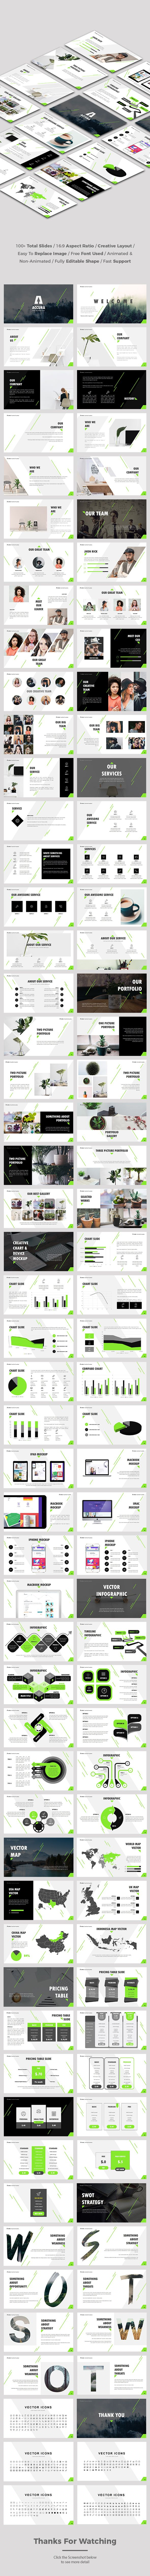 Accura - Pitch Deck PowerPoint Template - 100+ Total Slides